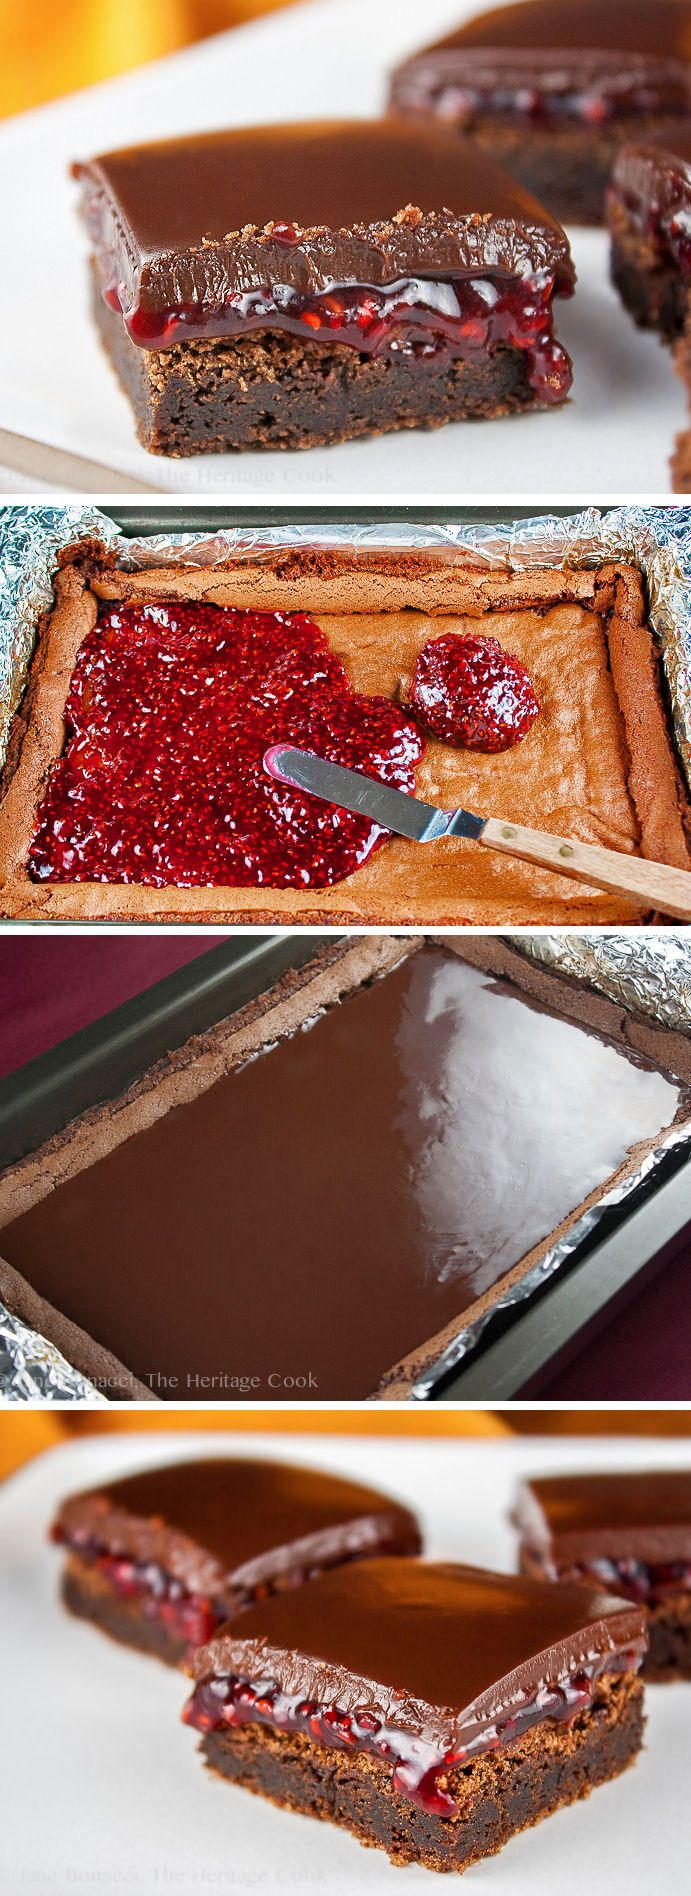 Raspberry Chocolate Brownies; 2015 Jane Bonacci, The Heritage Cook